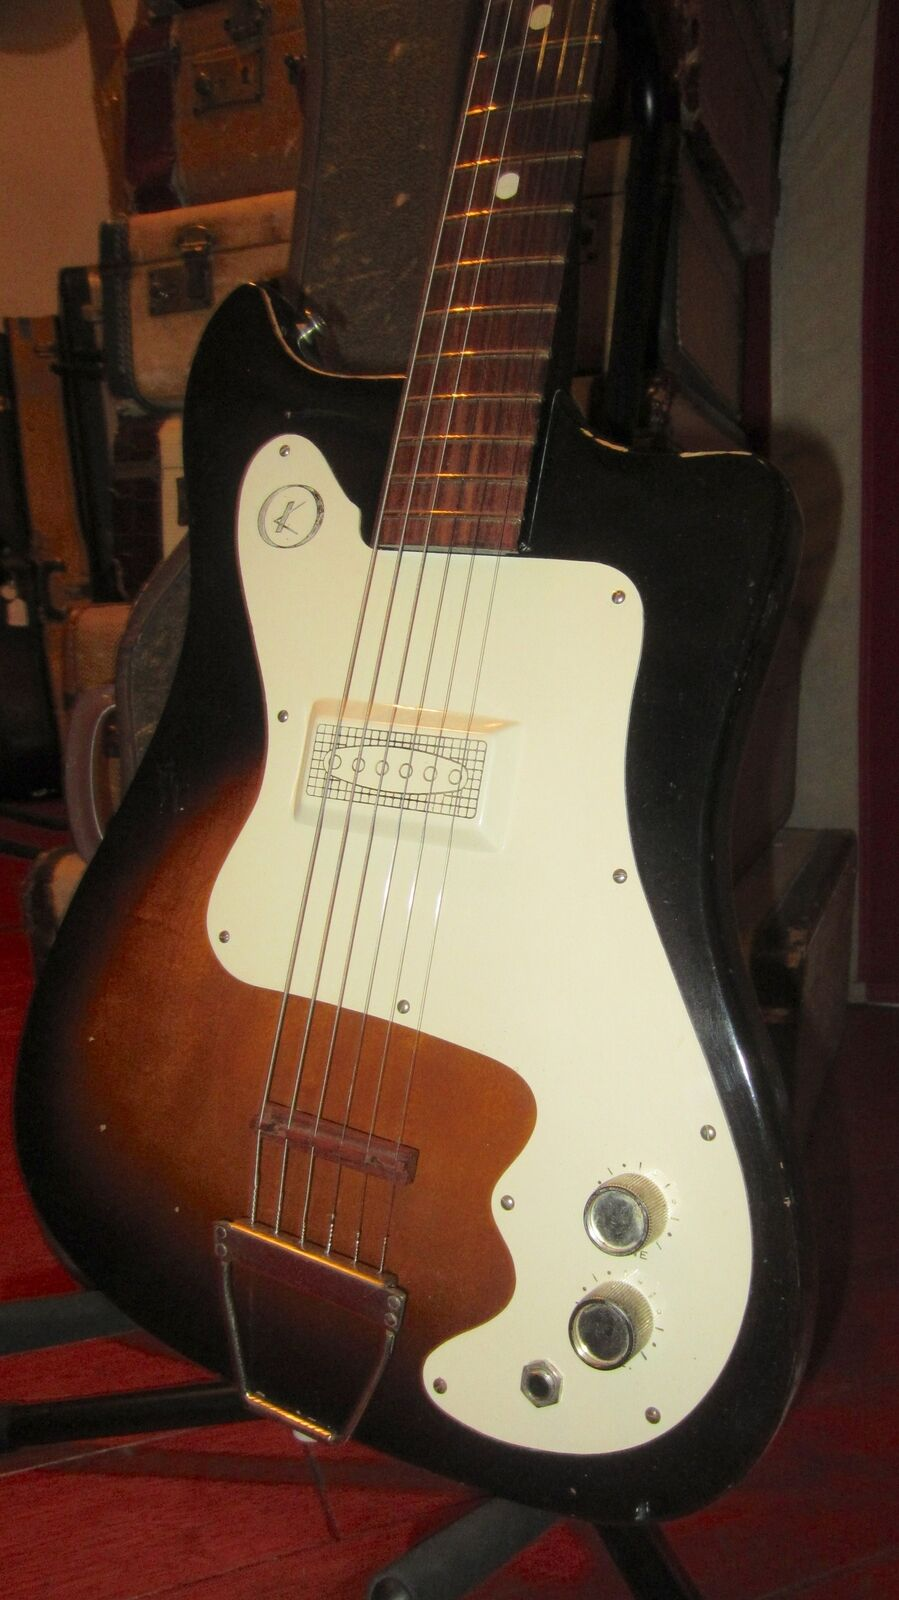 Vintage Circa 1965 Kay Vanguard Electric Solidbody Guitar Sunburst With OSSC